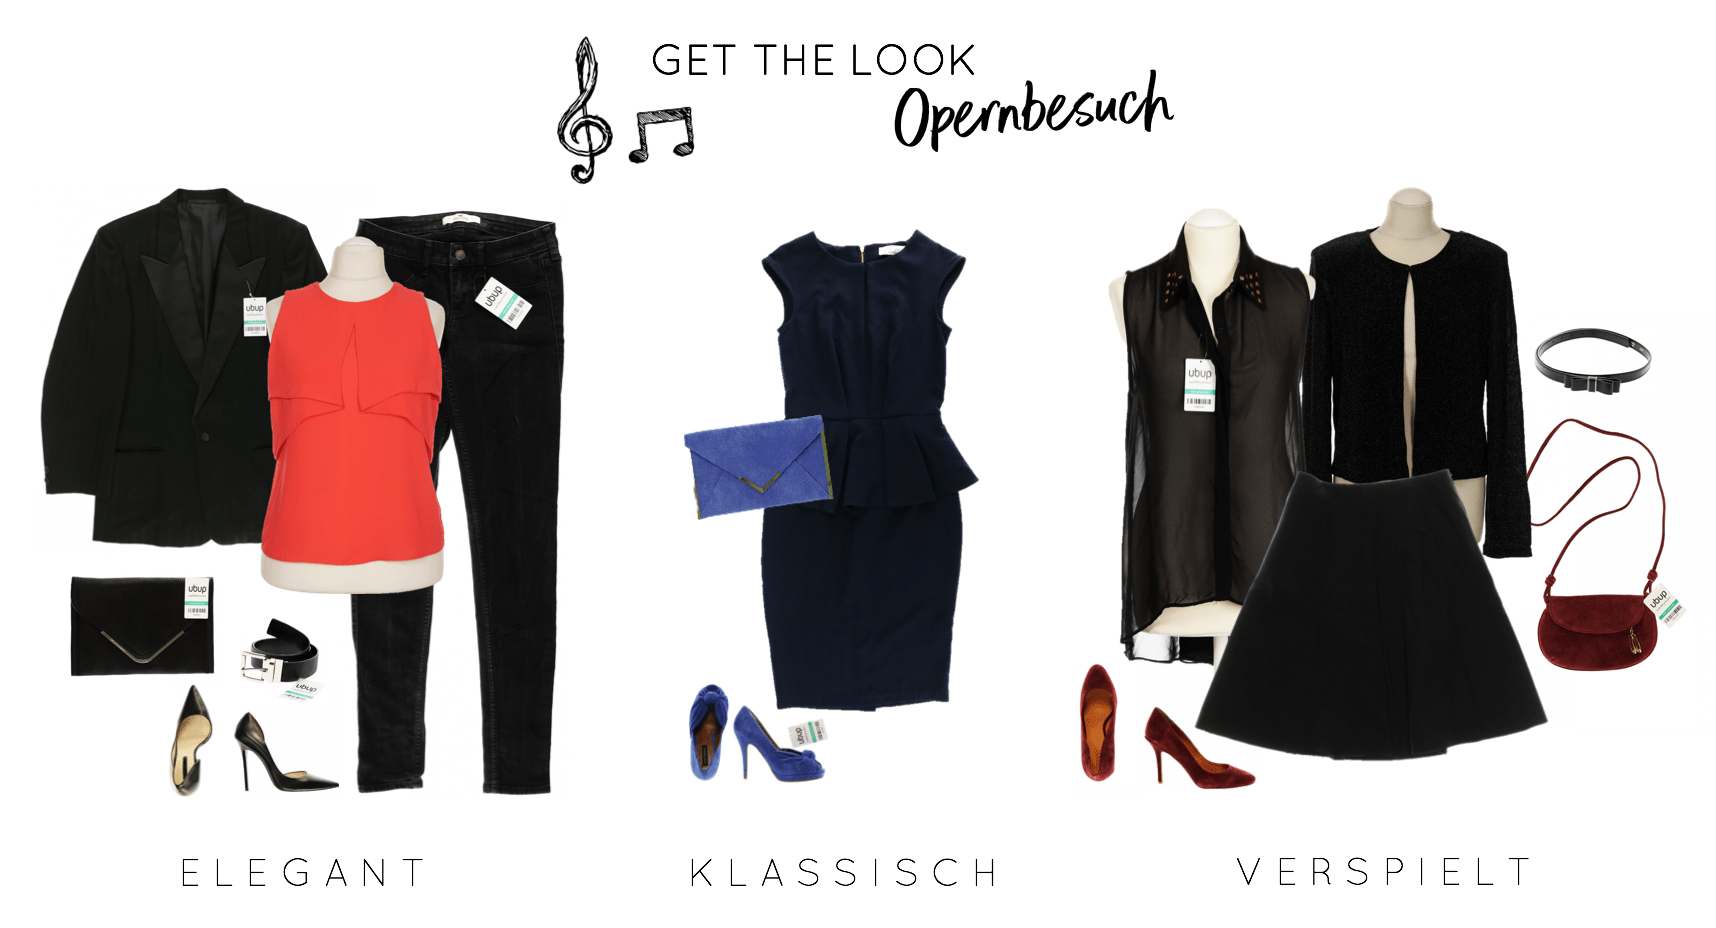 dasistubup - Deutsche Oper - Get the Look